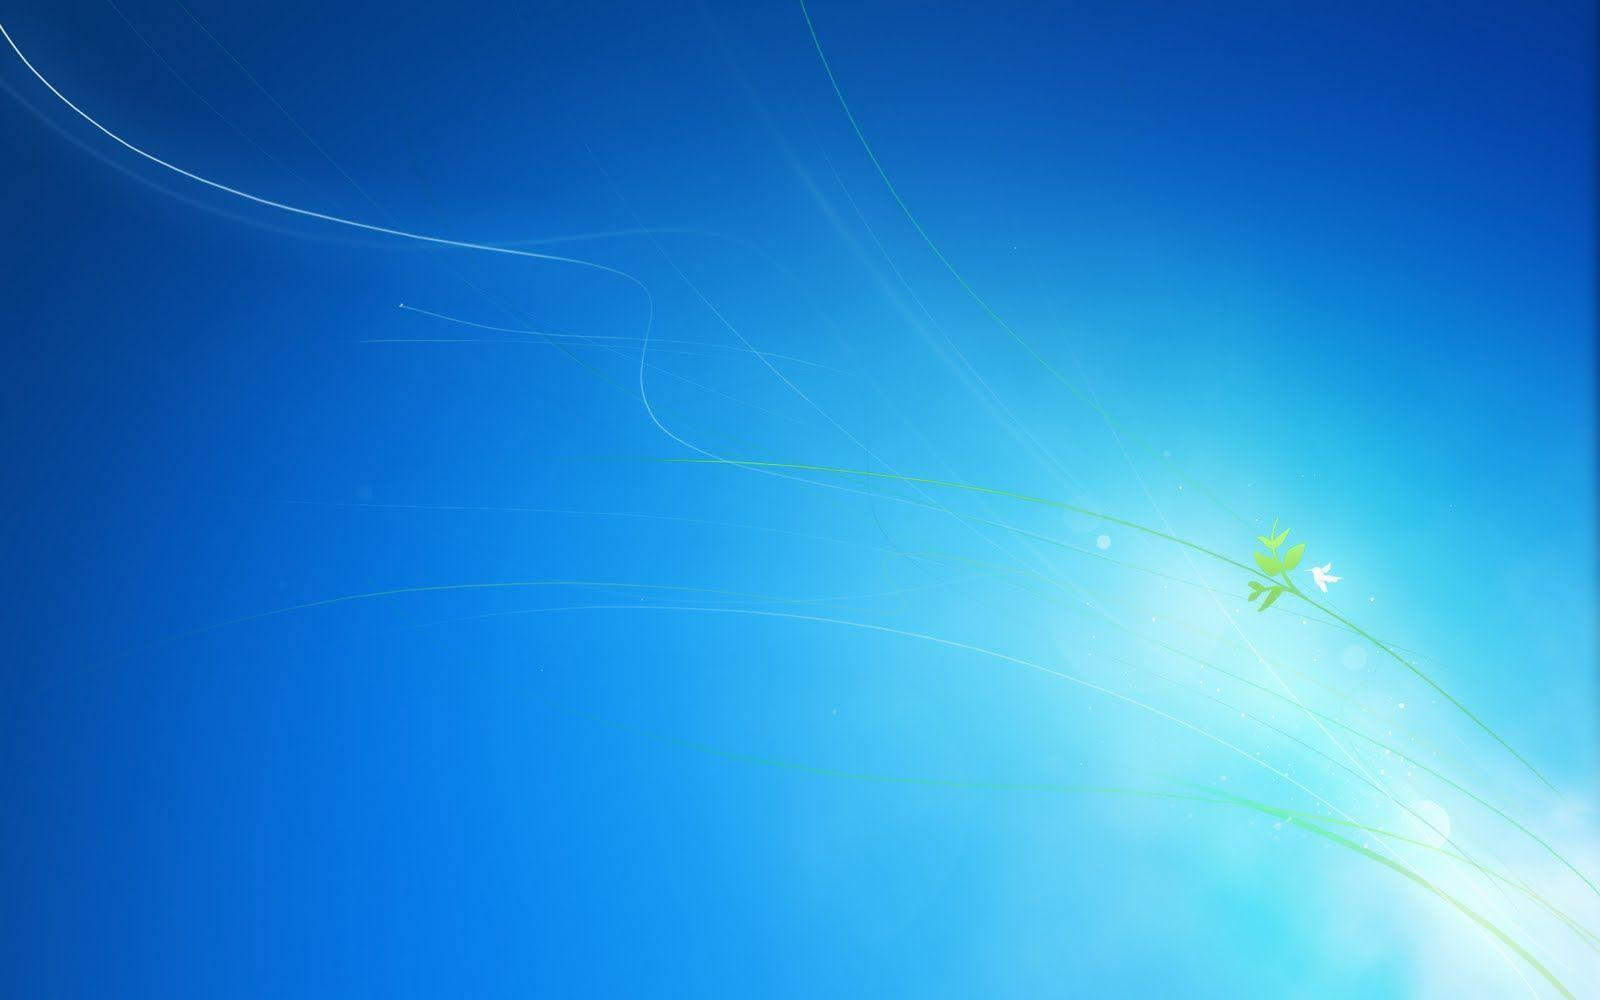 Cool Windows 7 Blue Hd Backgrounds Wallpapers